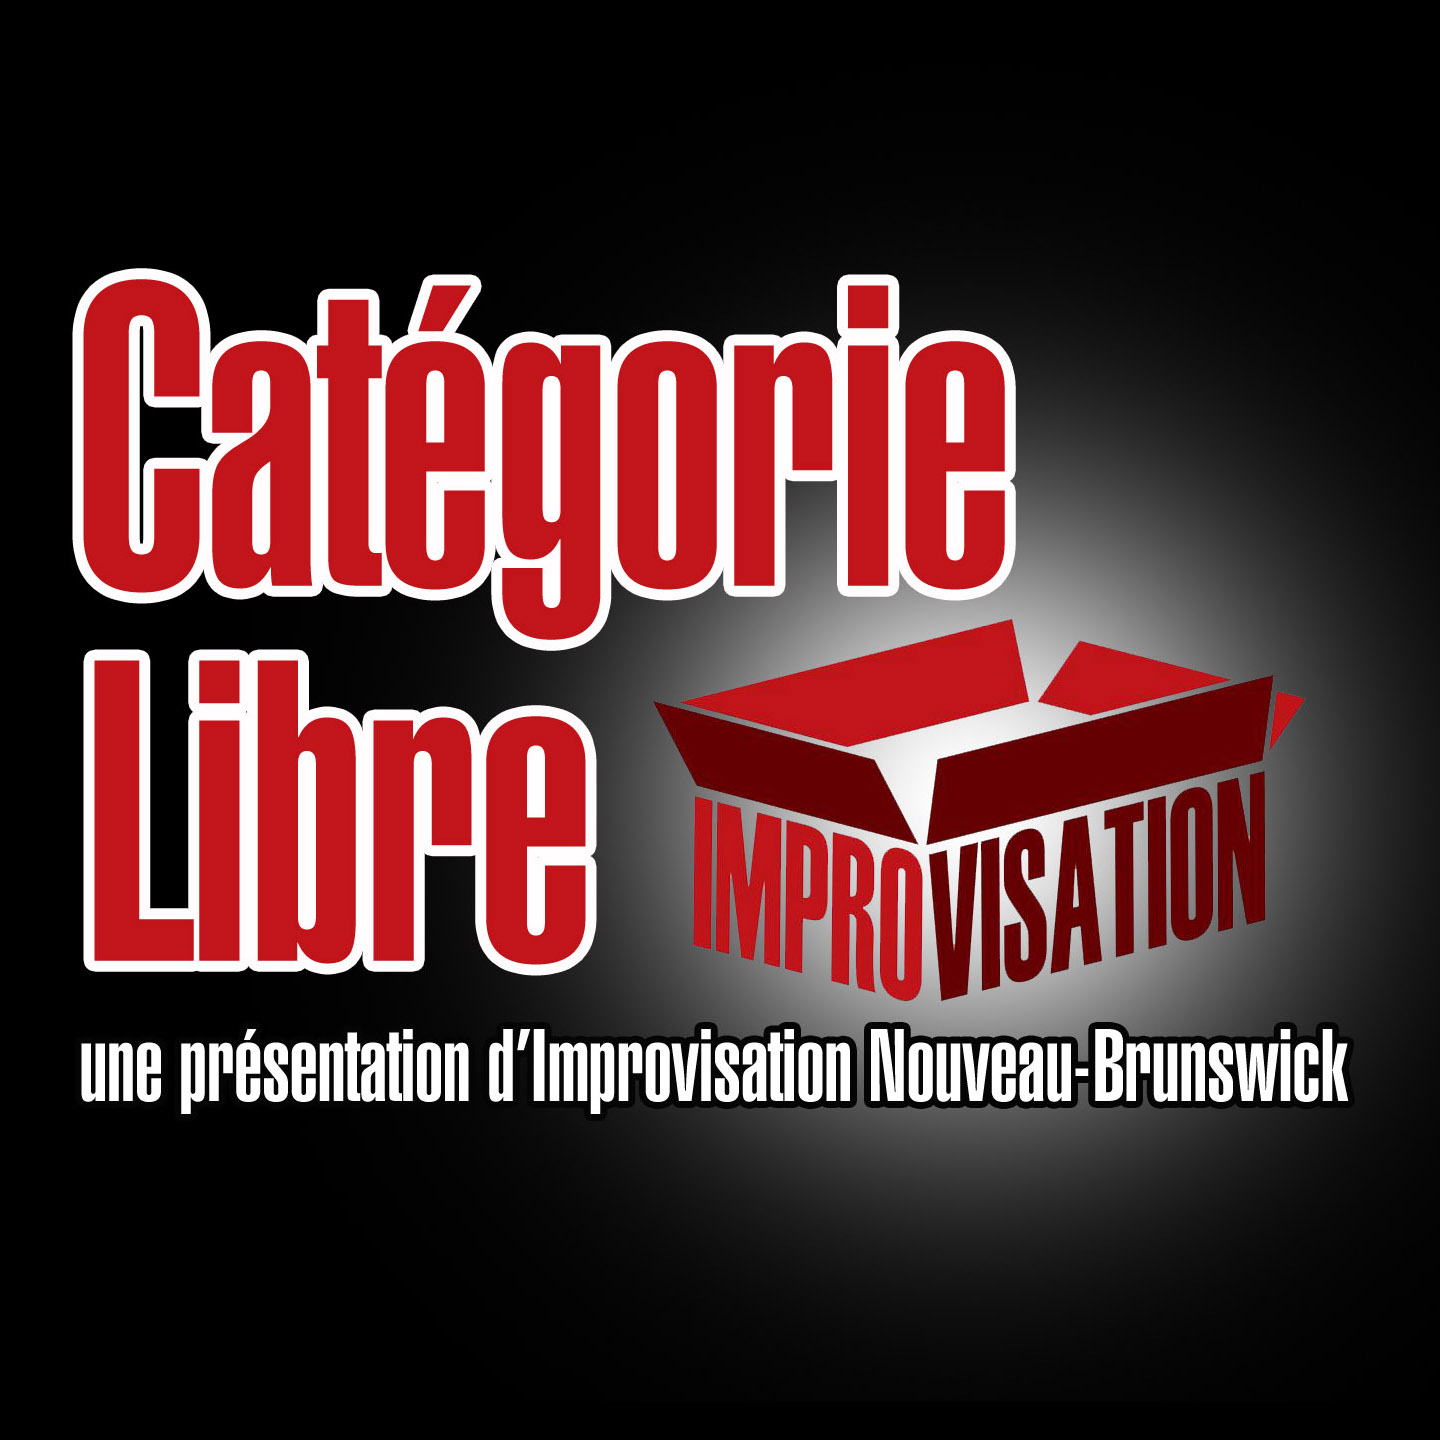 Improvisation Nouveau-Brunswick presente Categorie Libre